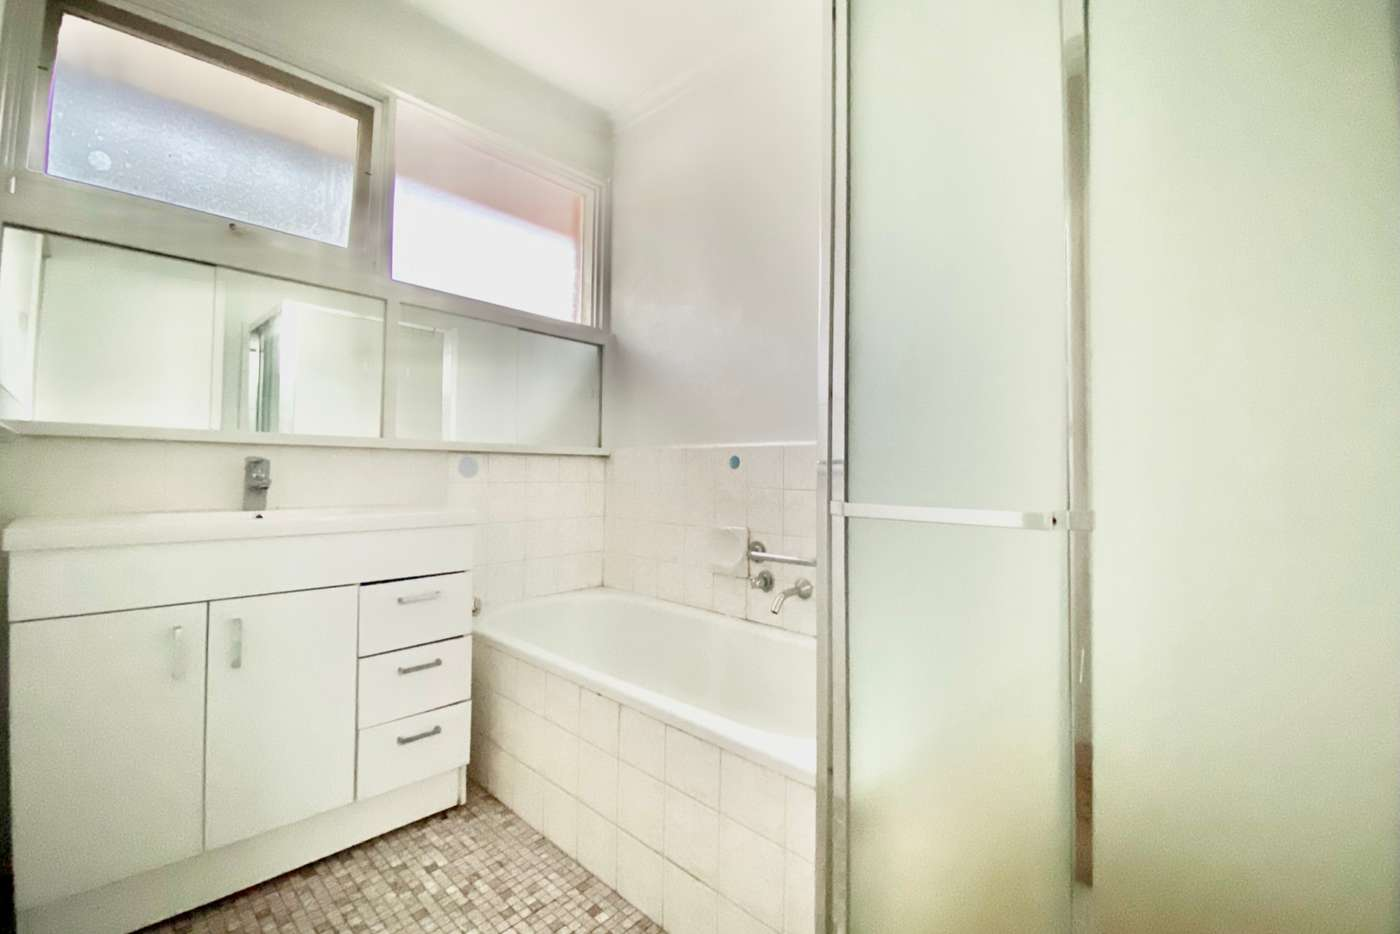 Sixth view of Homely unit listing, 2/6A Marriott Street, Caulfield VIC 3162